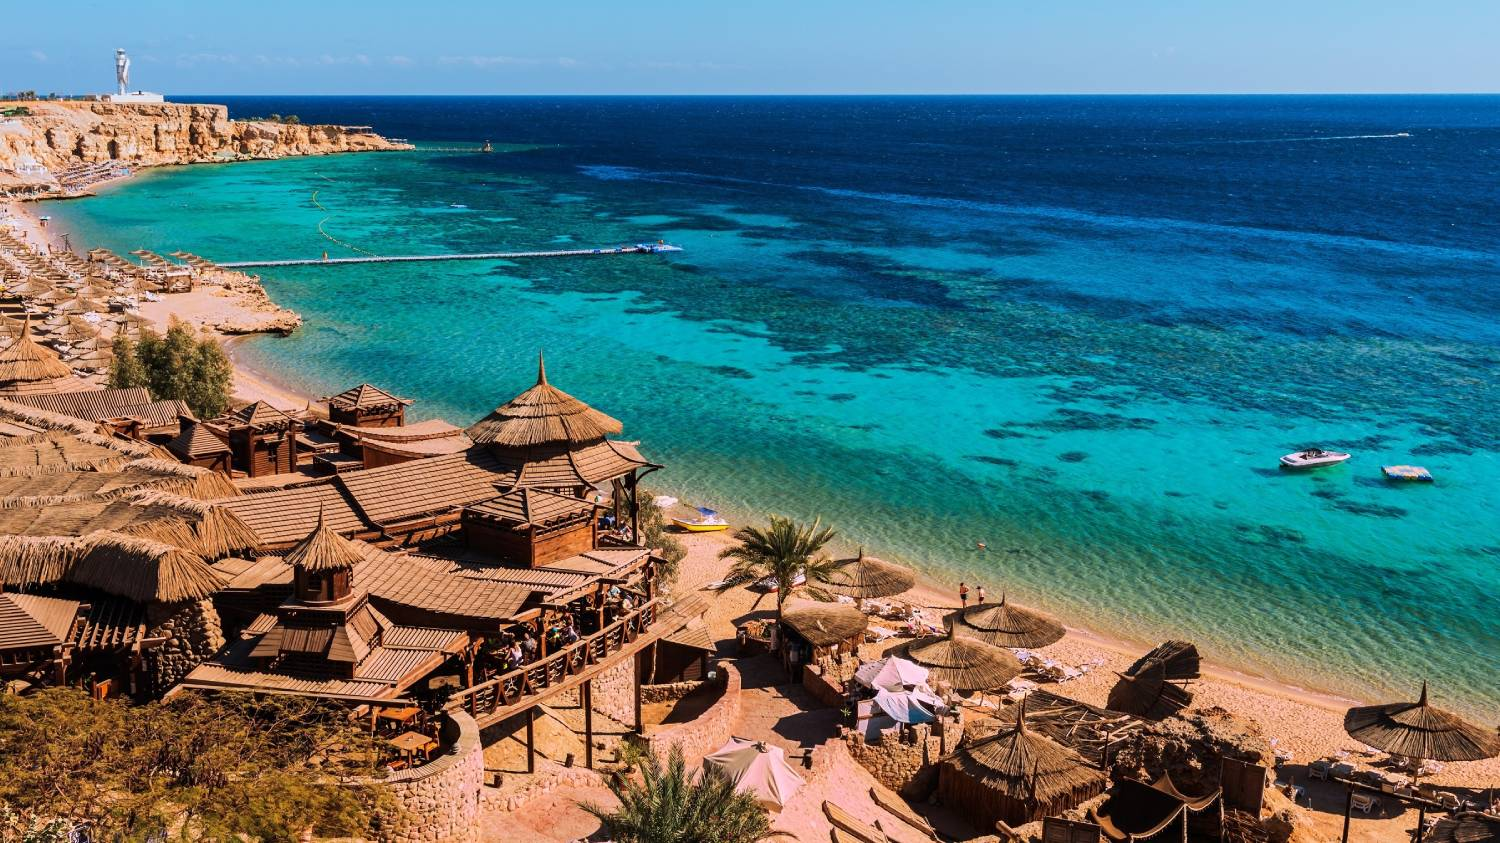 Sharm El Sheikh - The Best Places To Visit In Egypt